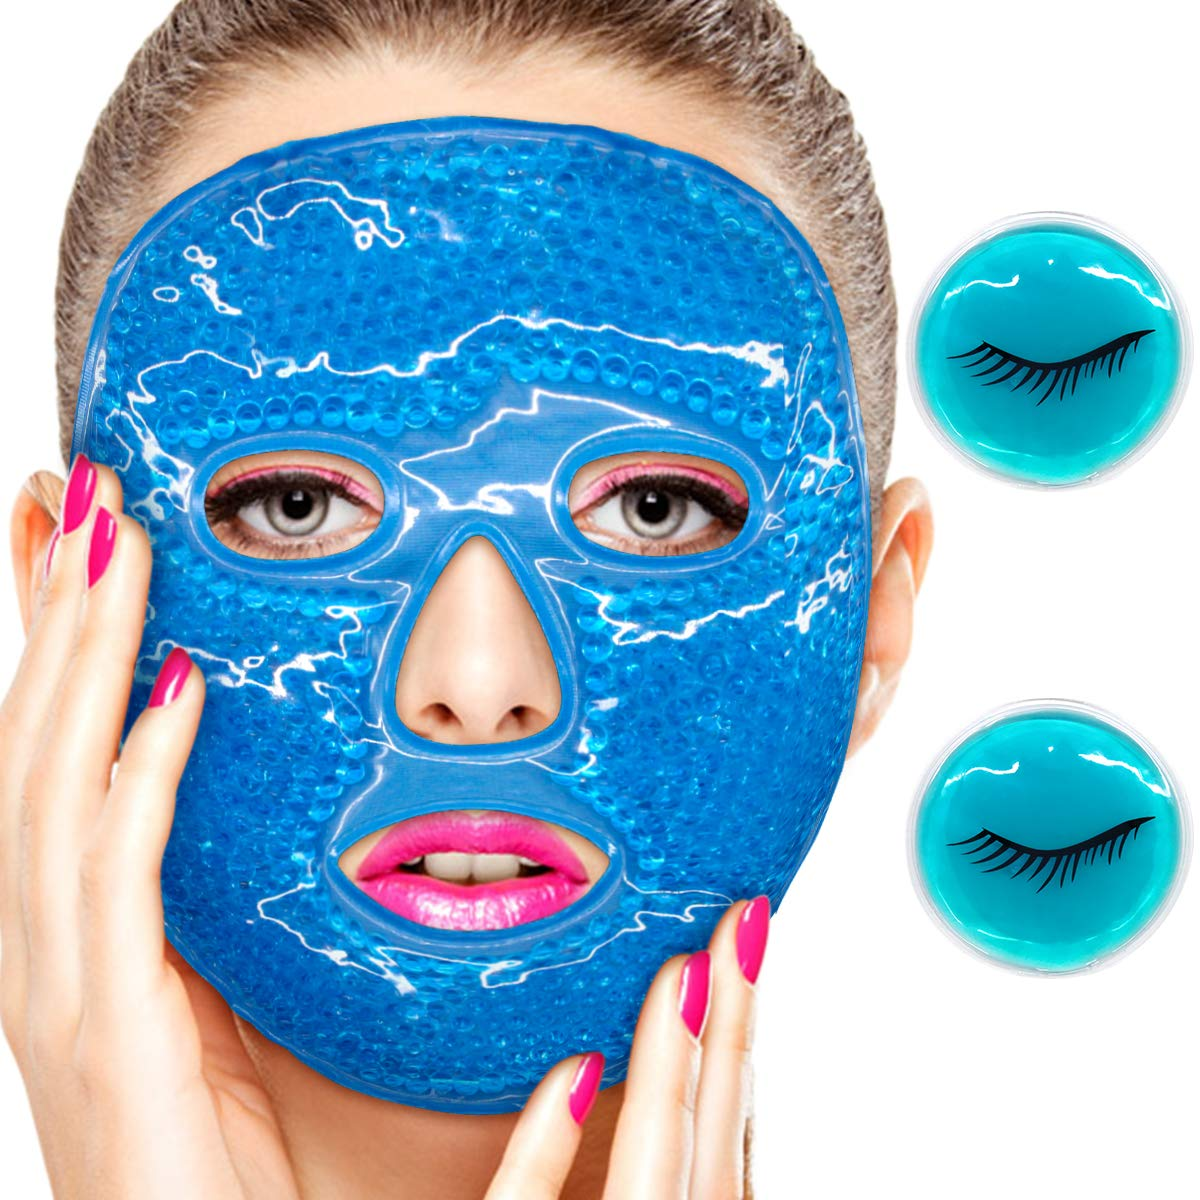 3pcs Reusable Ice Face Mask - Eye Mask for Women Hot/Cold Compress Facial Mask with Gel Beads, Face Massager, Cooling Face Mask, Stress Relief, Puffy Eyes, Dark Circles,